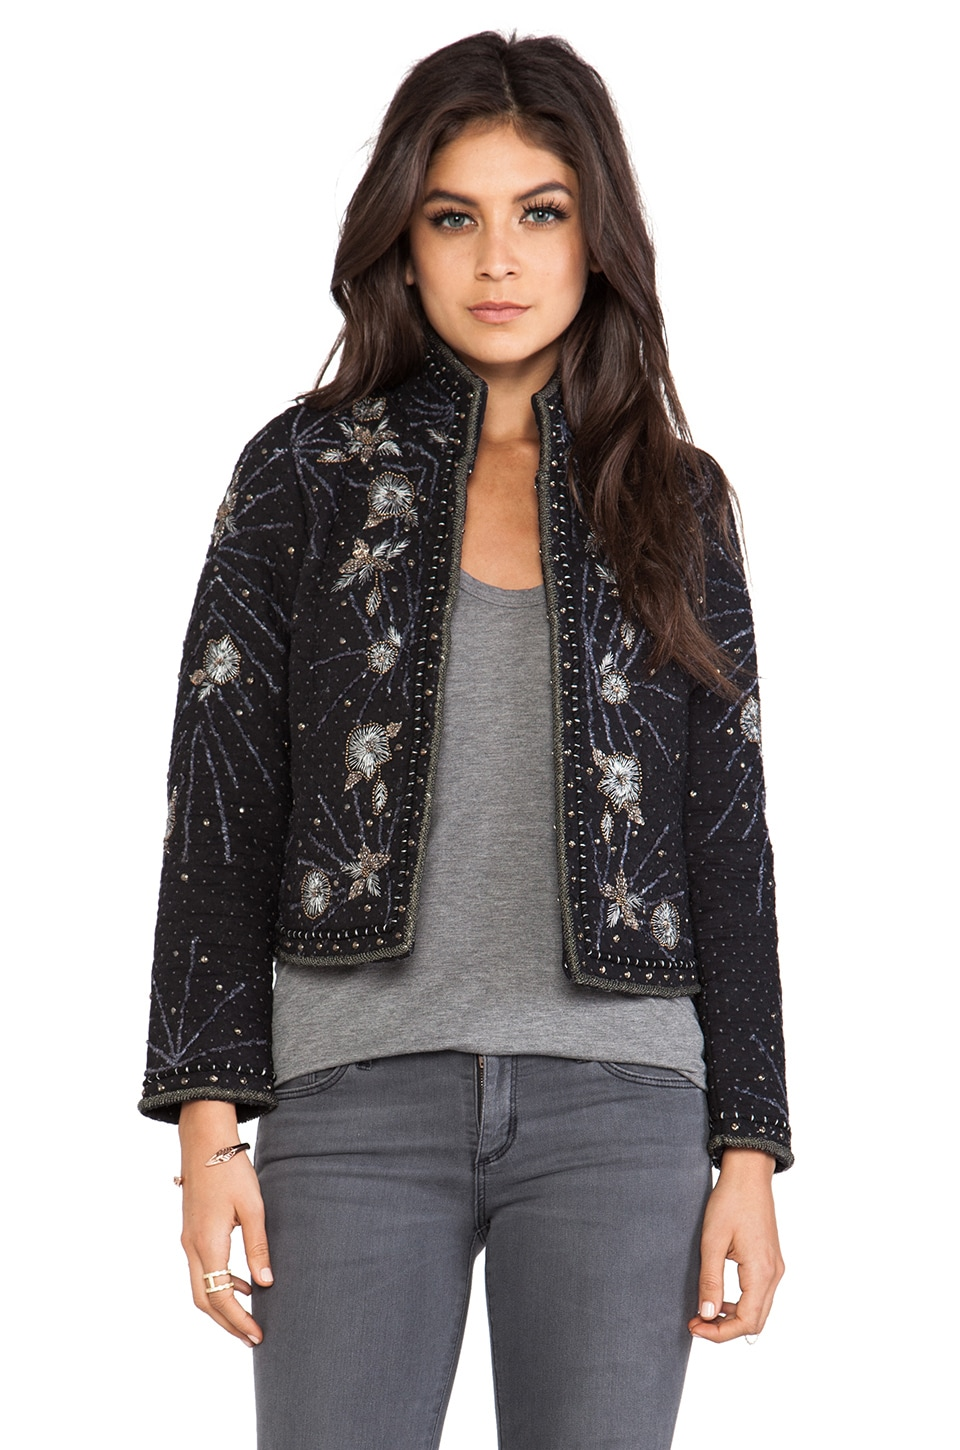 Antik Batik Marani Jacket in Black